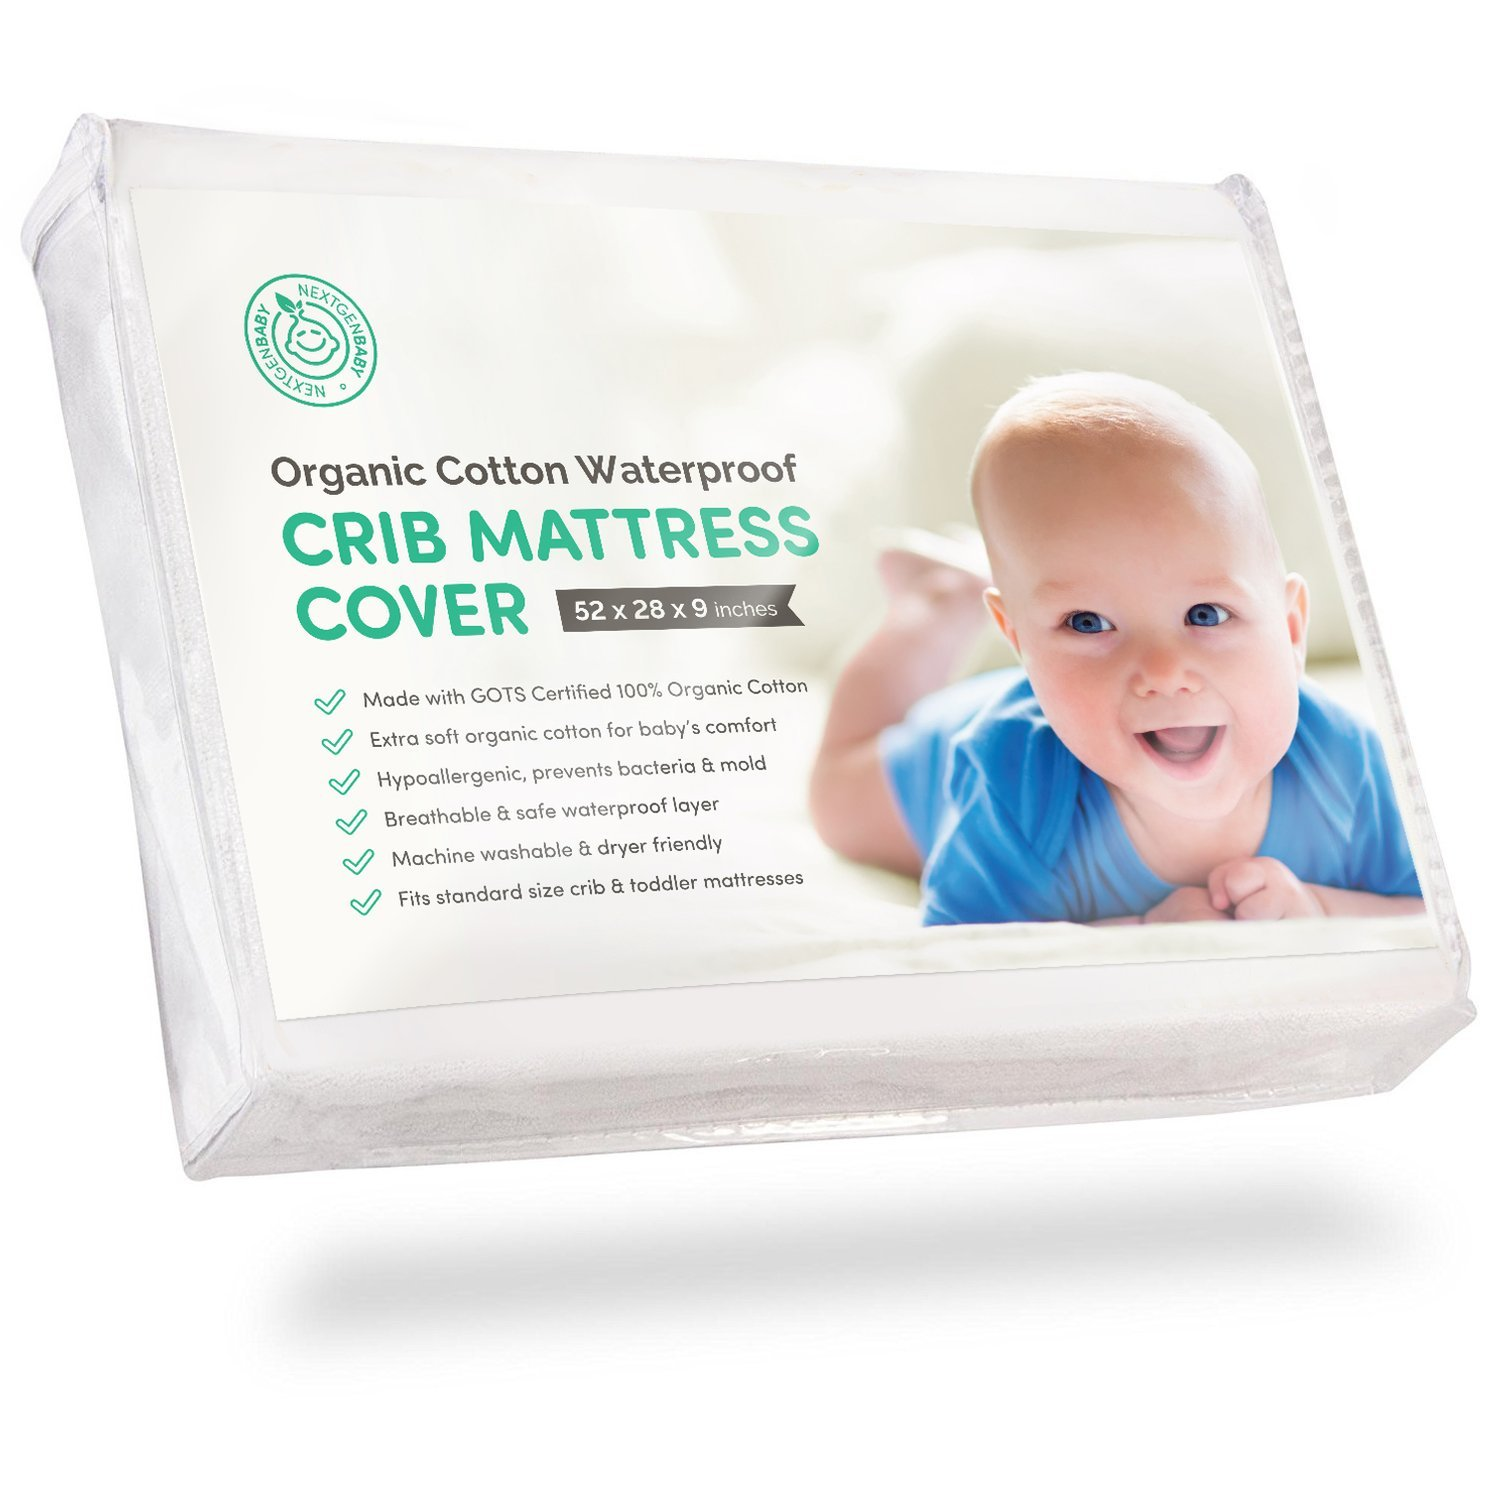 Baby crib mattress amazon - Amazon Com Certified Organic Cotton Waterproof Crib Mattress Pad Cover With 100 Organic Cotton Filling Breathable Hypoallergenic Healthy